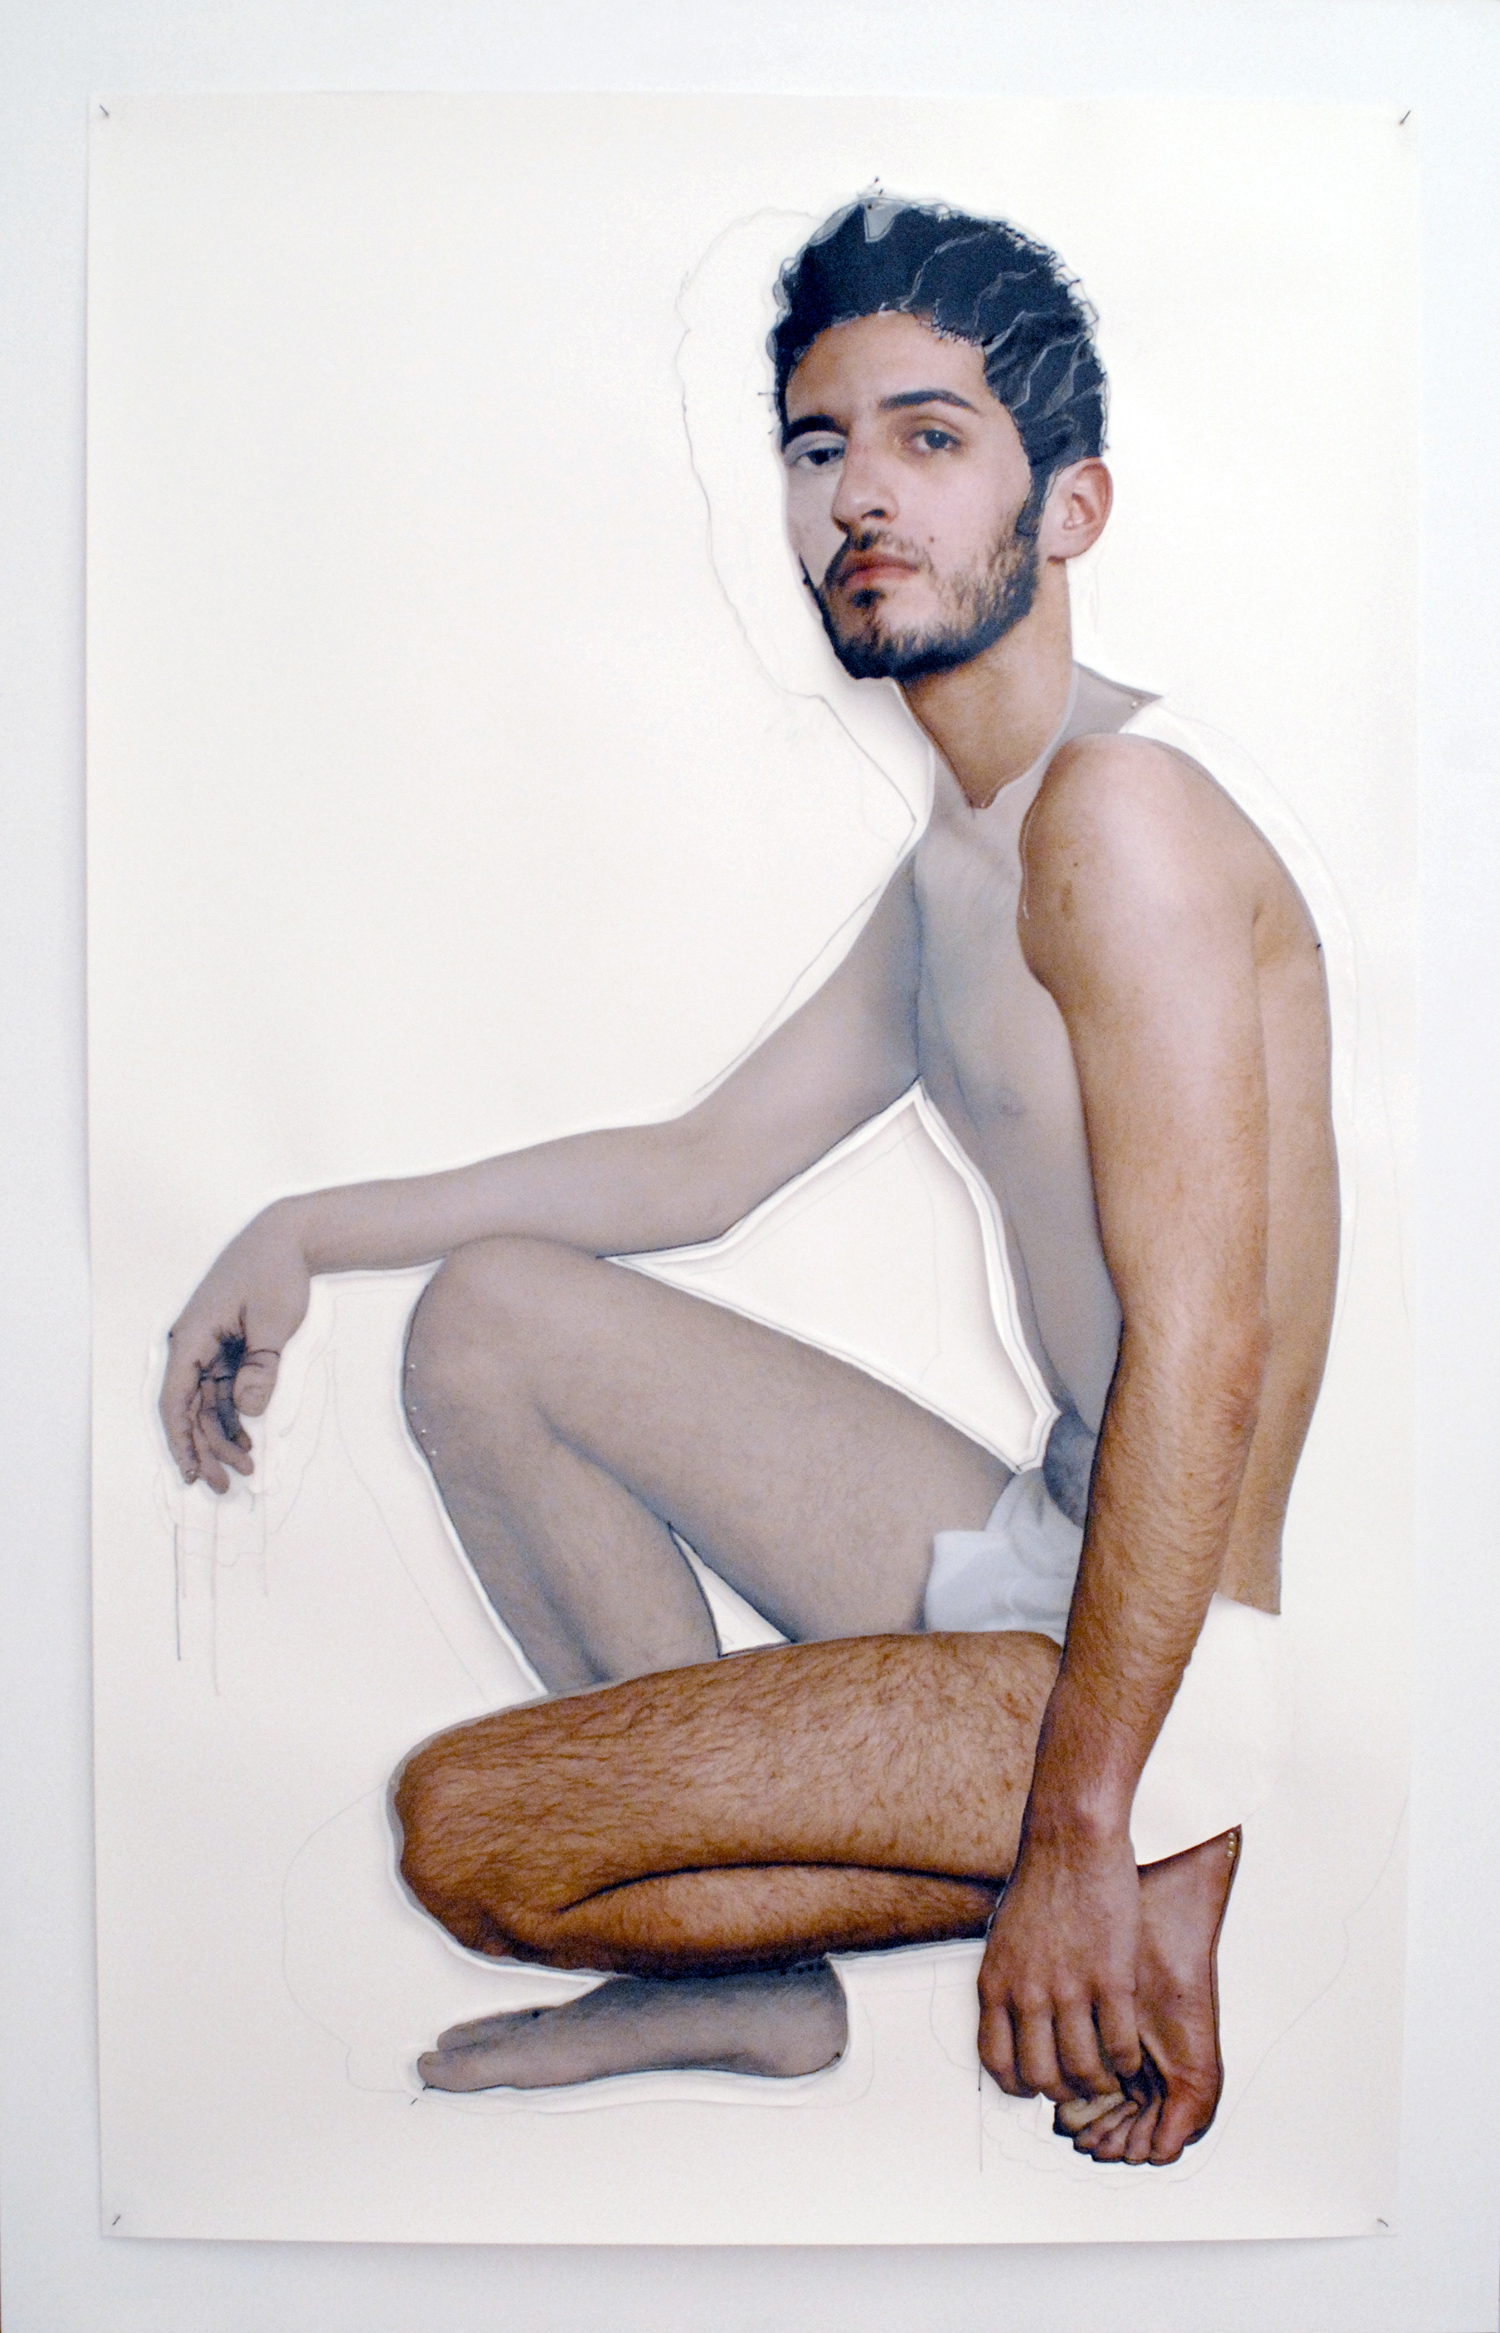 Germán Gómez, Drawn VI (from the Drawn series), 2007. Mixed media drawing, 72⅛ x 47½ inches. Courtesy of 21c Museum Hotel